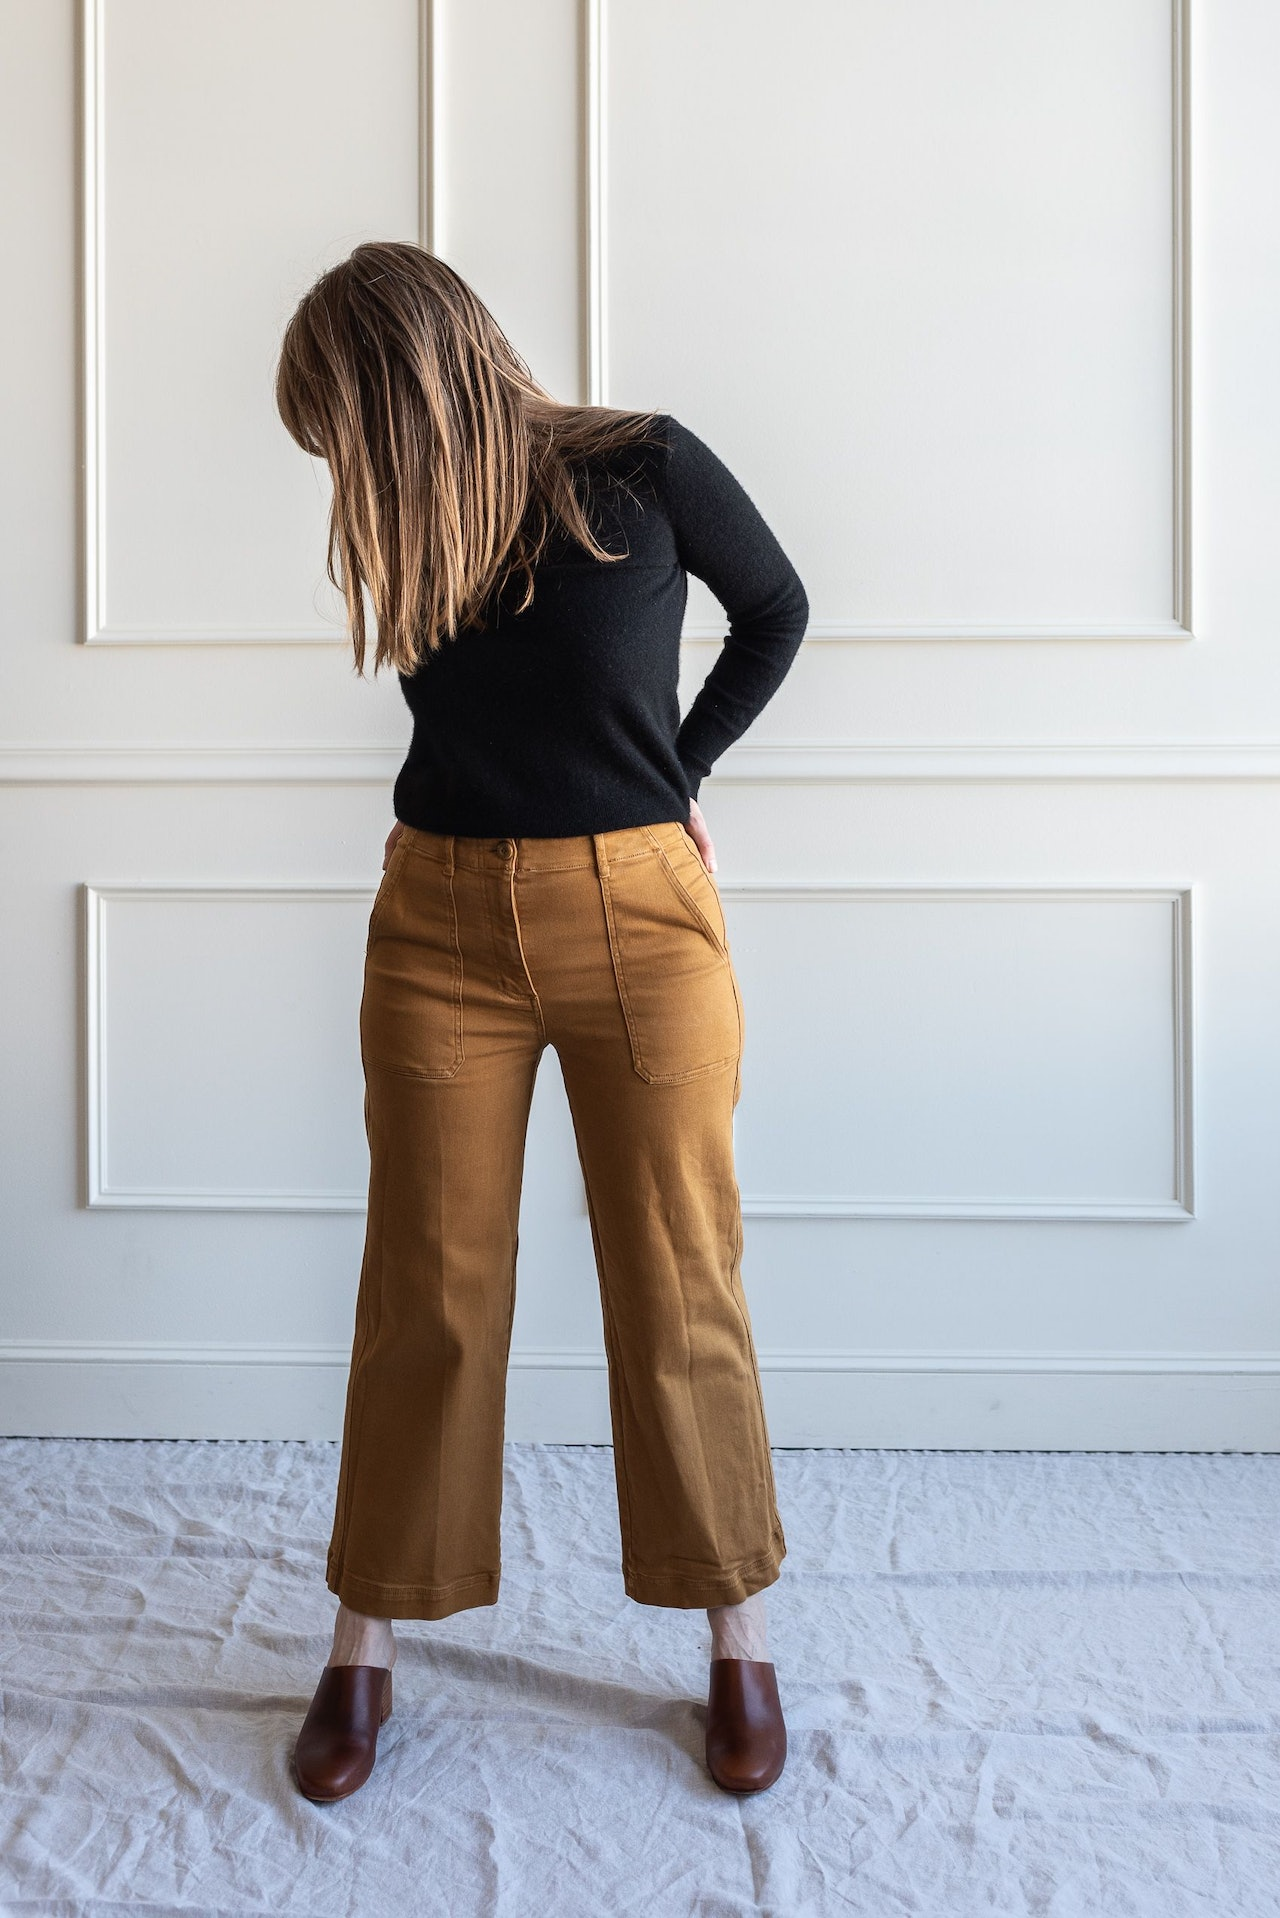 Fall 10x10 Day 6 Look - Everlane Black Cashmere Sweater, Golden Brown Utility Pants & Nisolo Brandy Mules by Conscious by Chloé